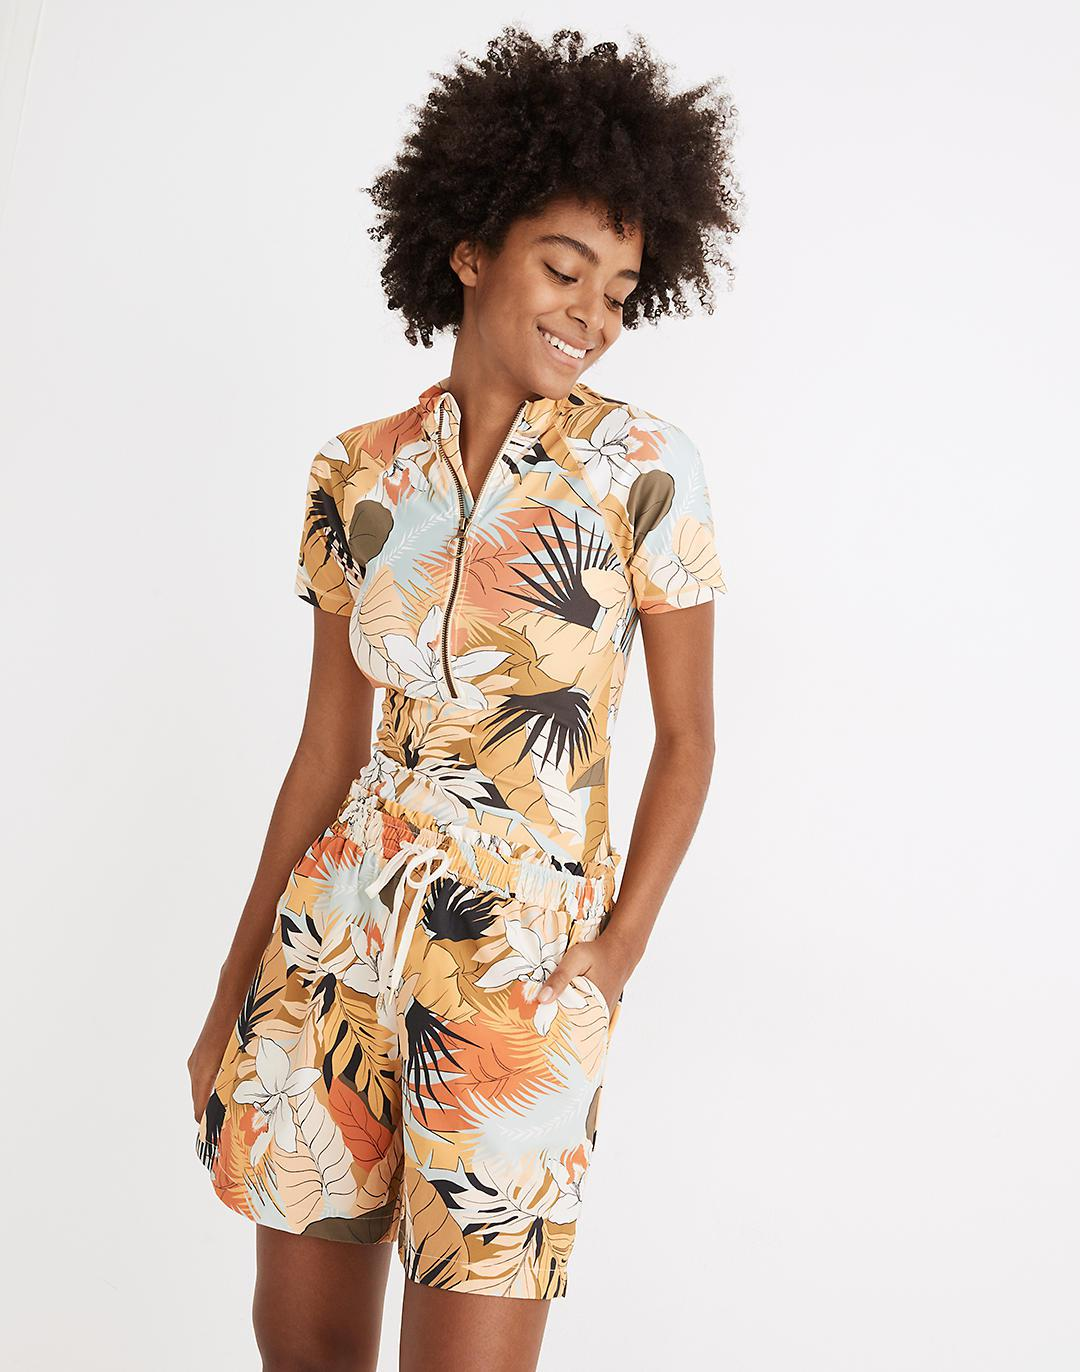 Madewell Second Wave Board Shorts in Tropical Vacation 0